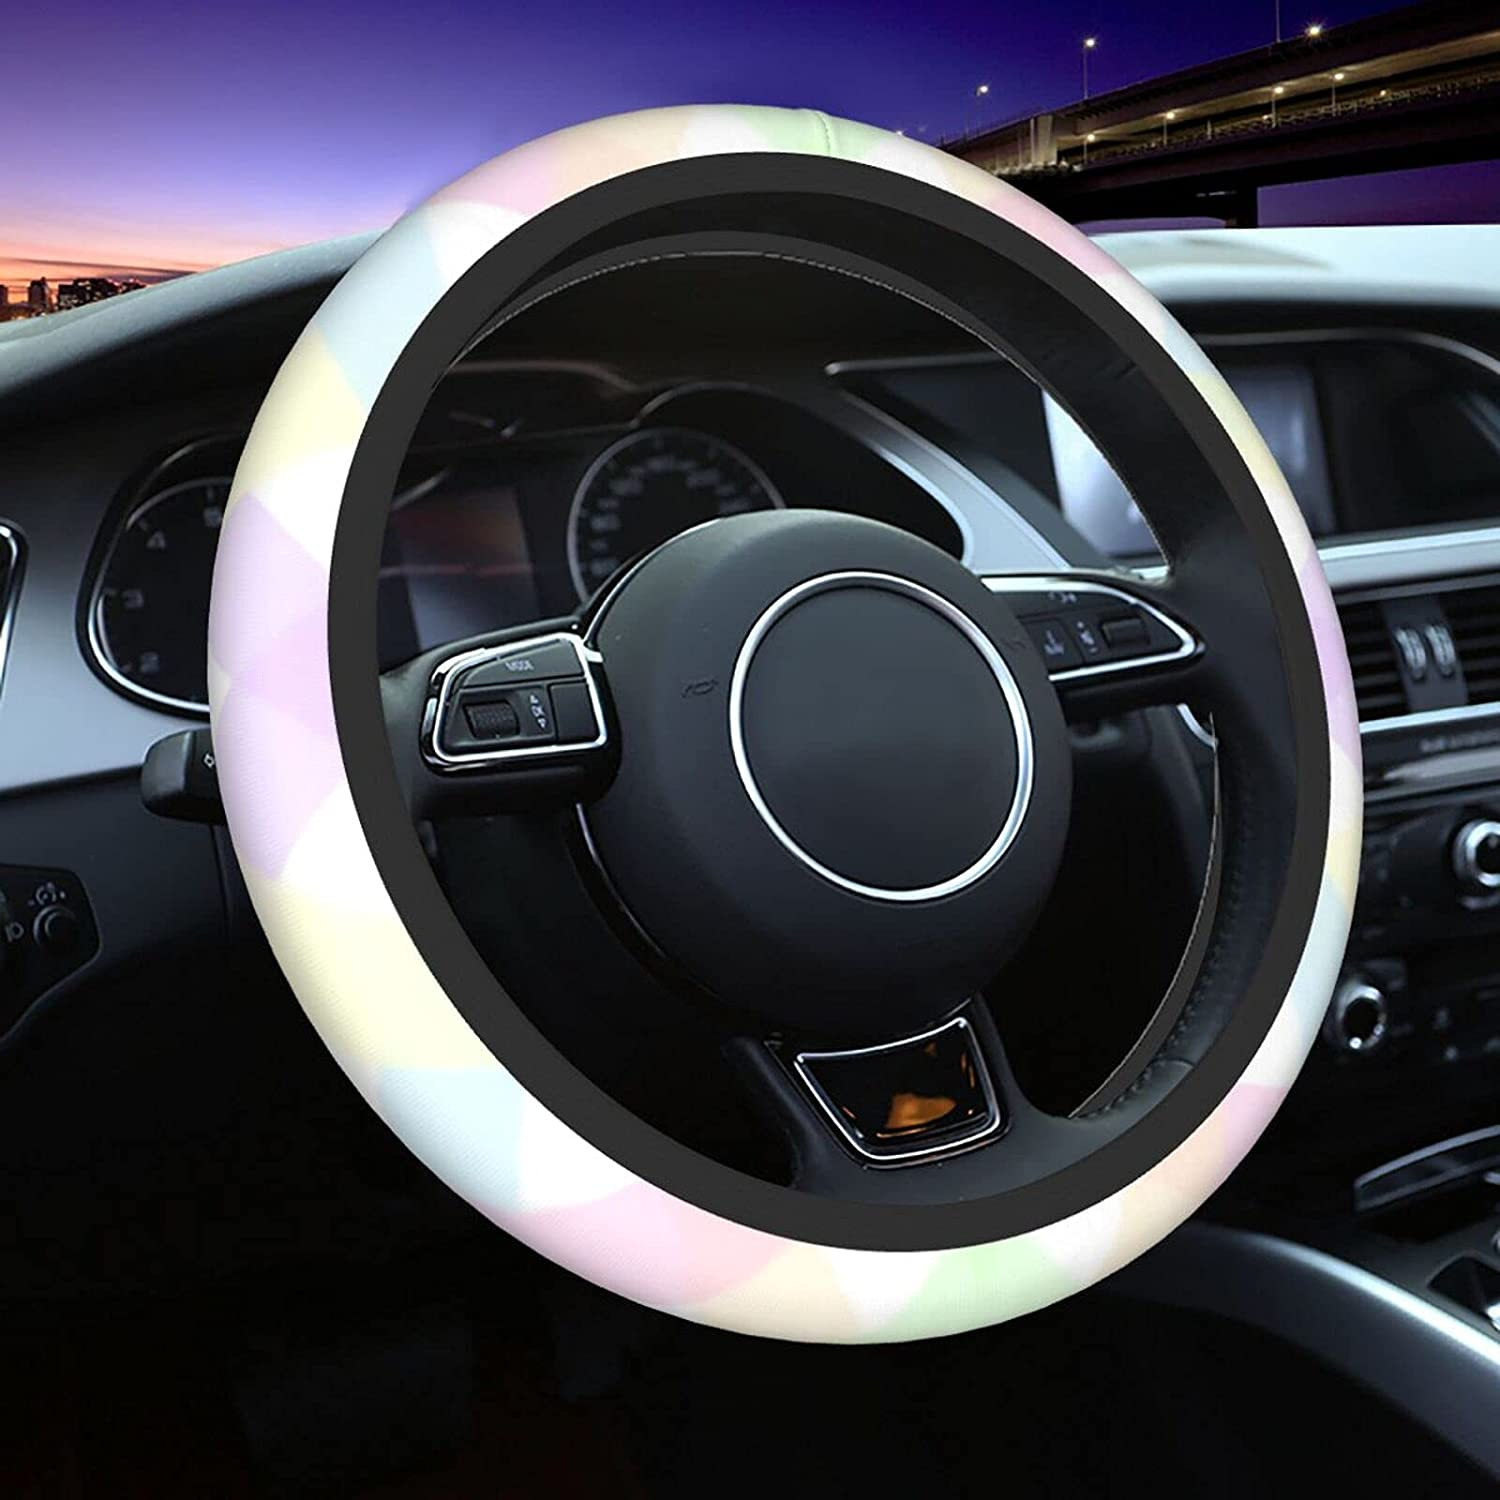 Genuine Free Shipping Beauty products Pastel Plaid Steering Wheel Auto Universal Cover 15Inch